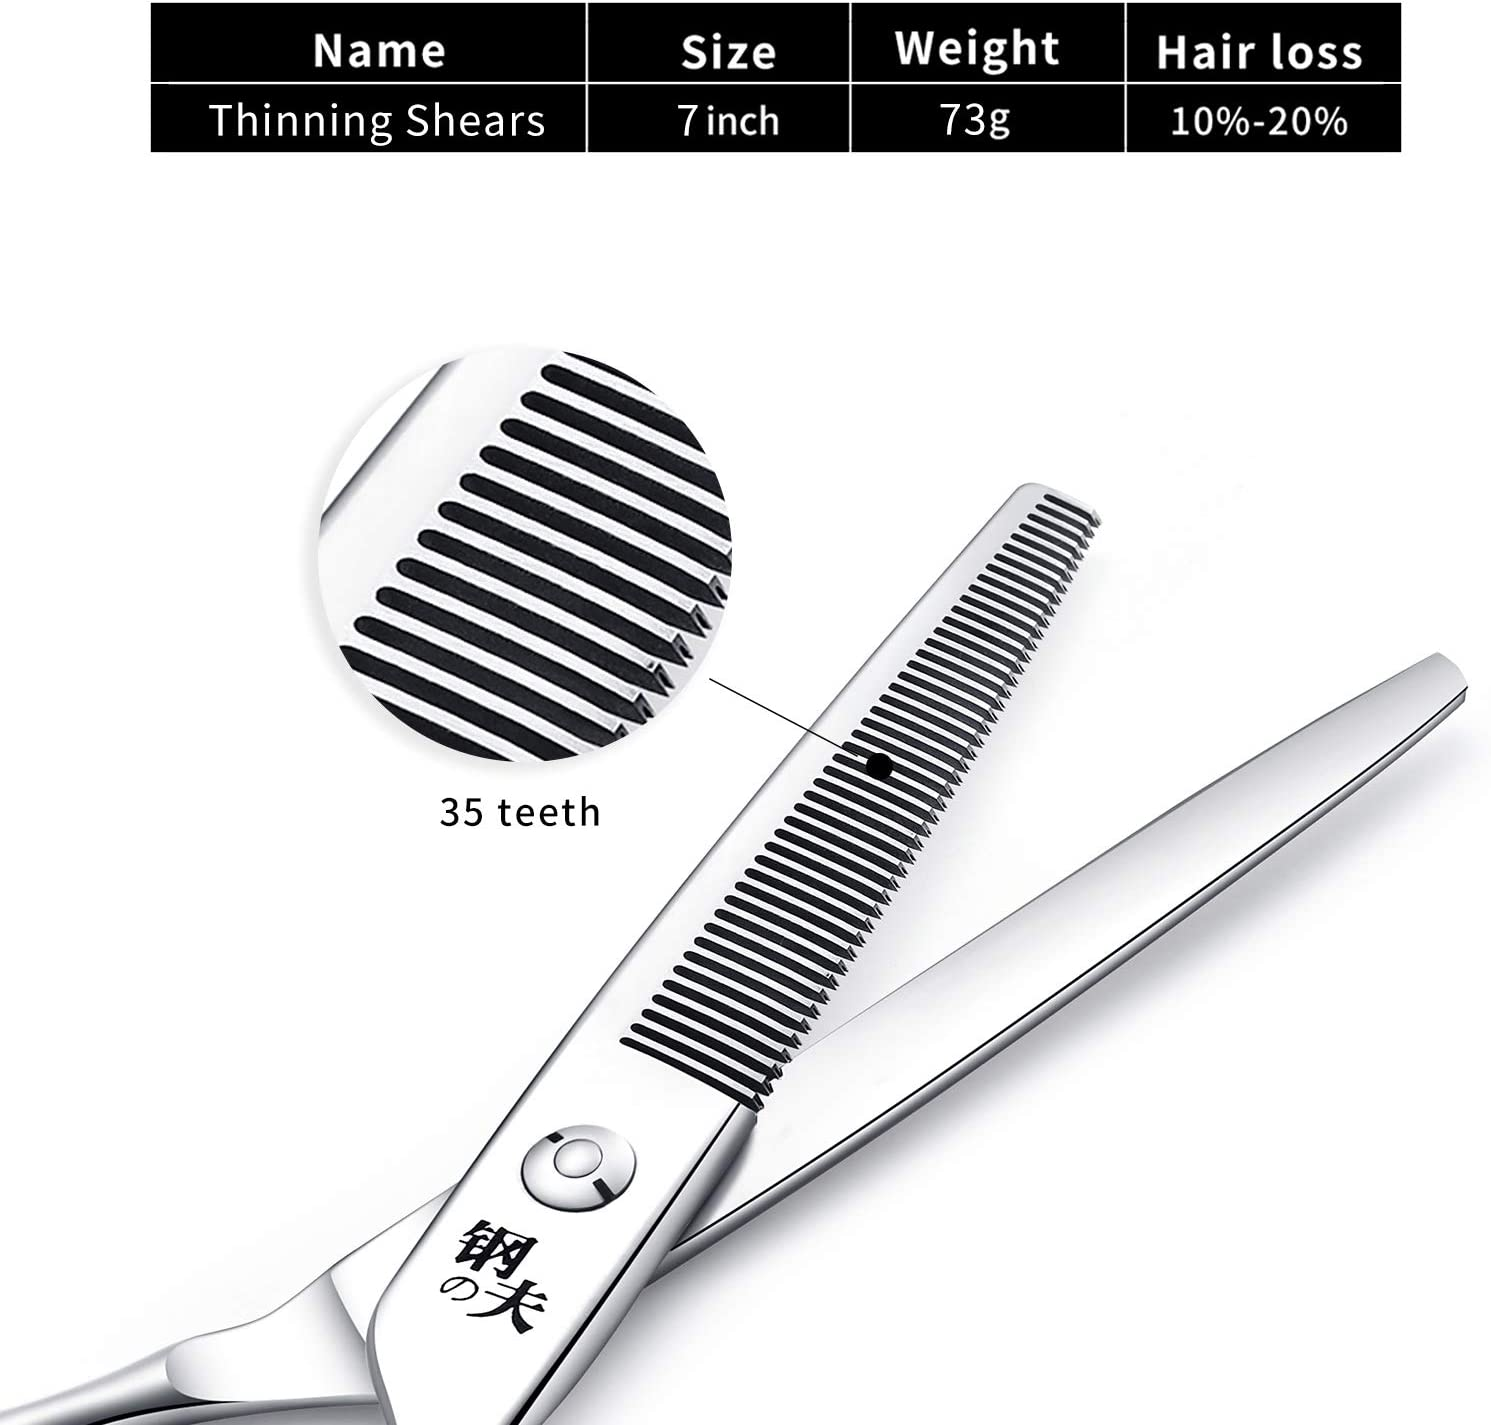 7.0 Pet Grooming Scissors,Curved Scissors//Thinning Shears,Made of Japanese 440C Stainless Steel Strong and Durable for Pet Groomer or Family DIY Use Silver-Curved Scissors